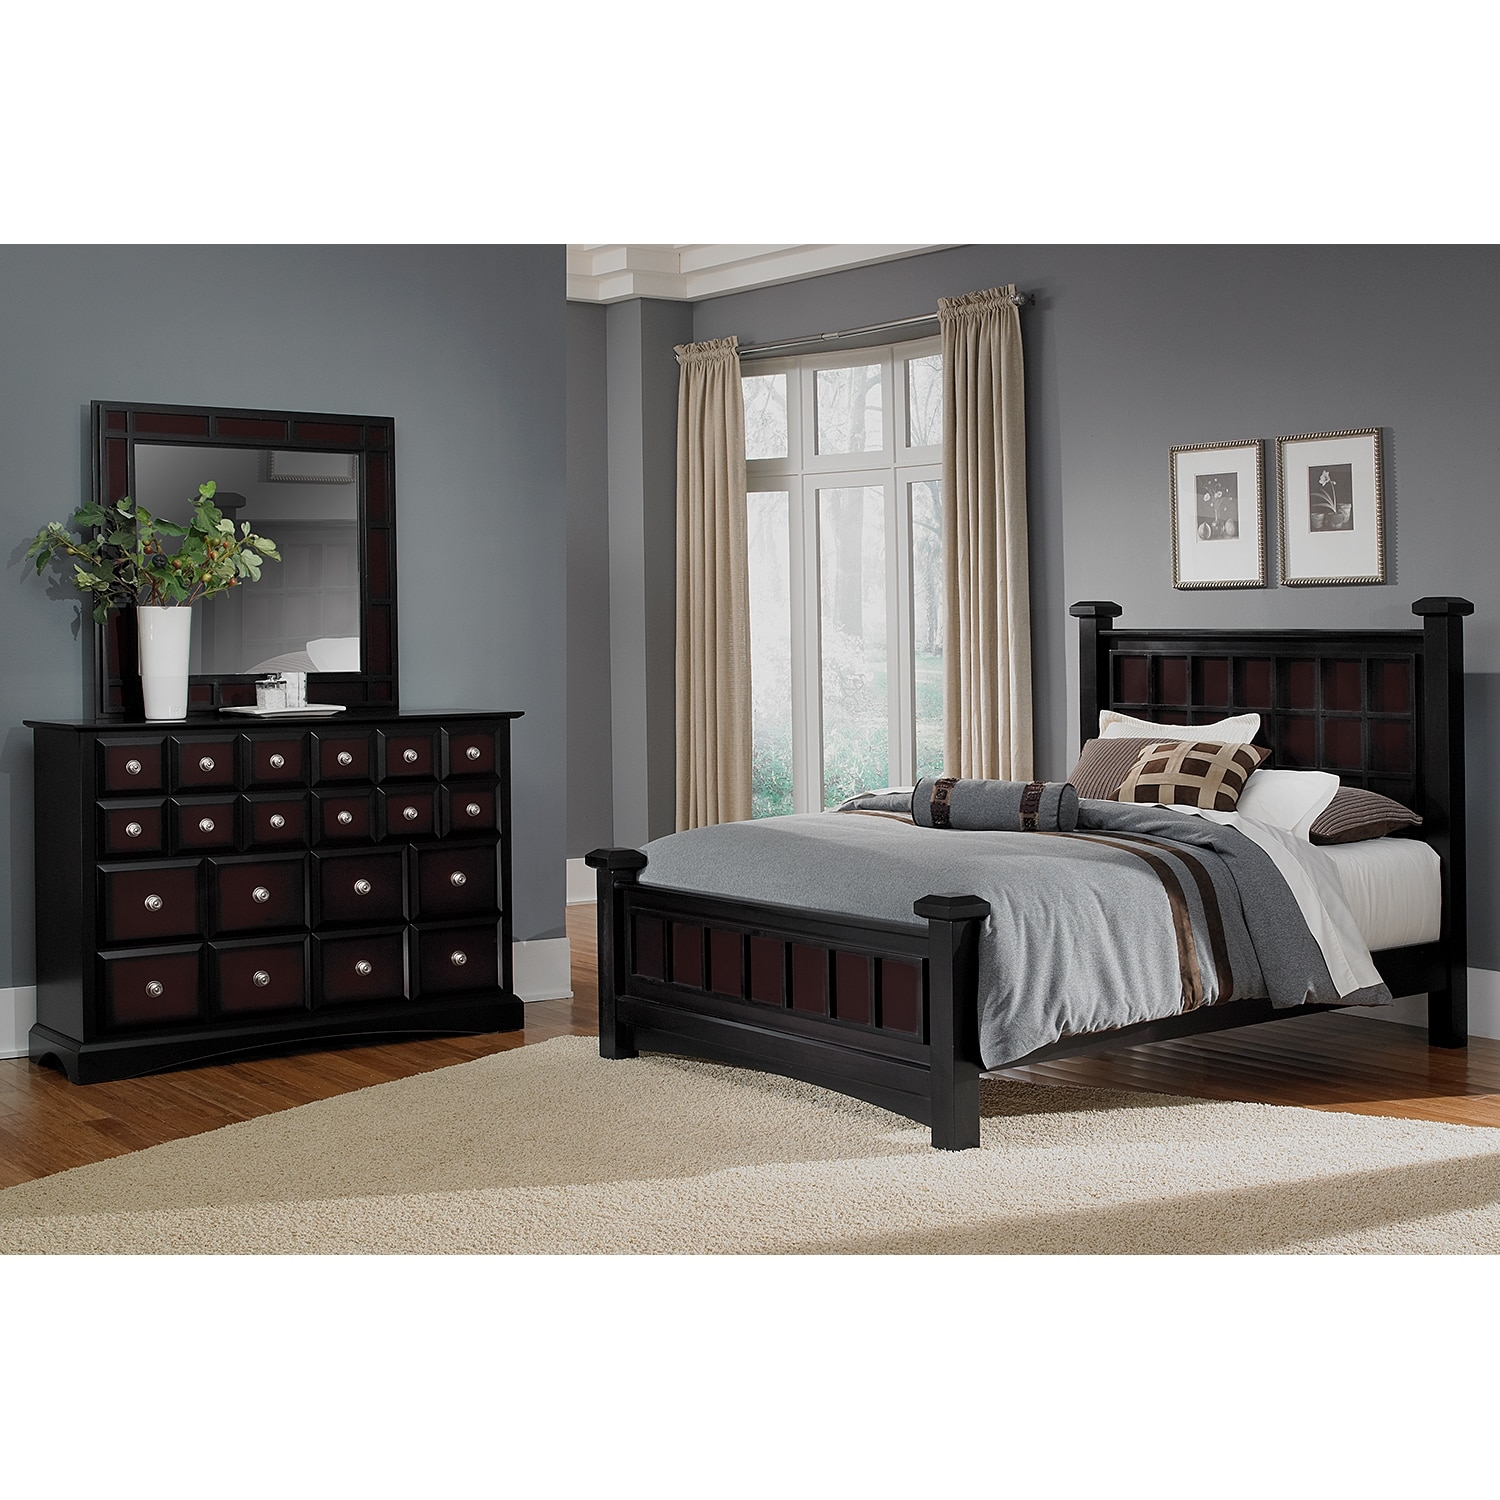 Winchester 5 Pc. King Bedroom